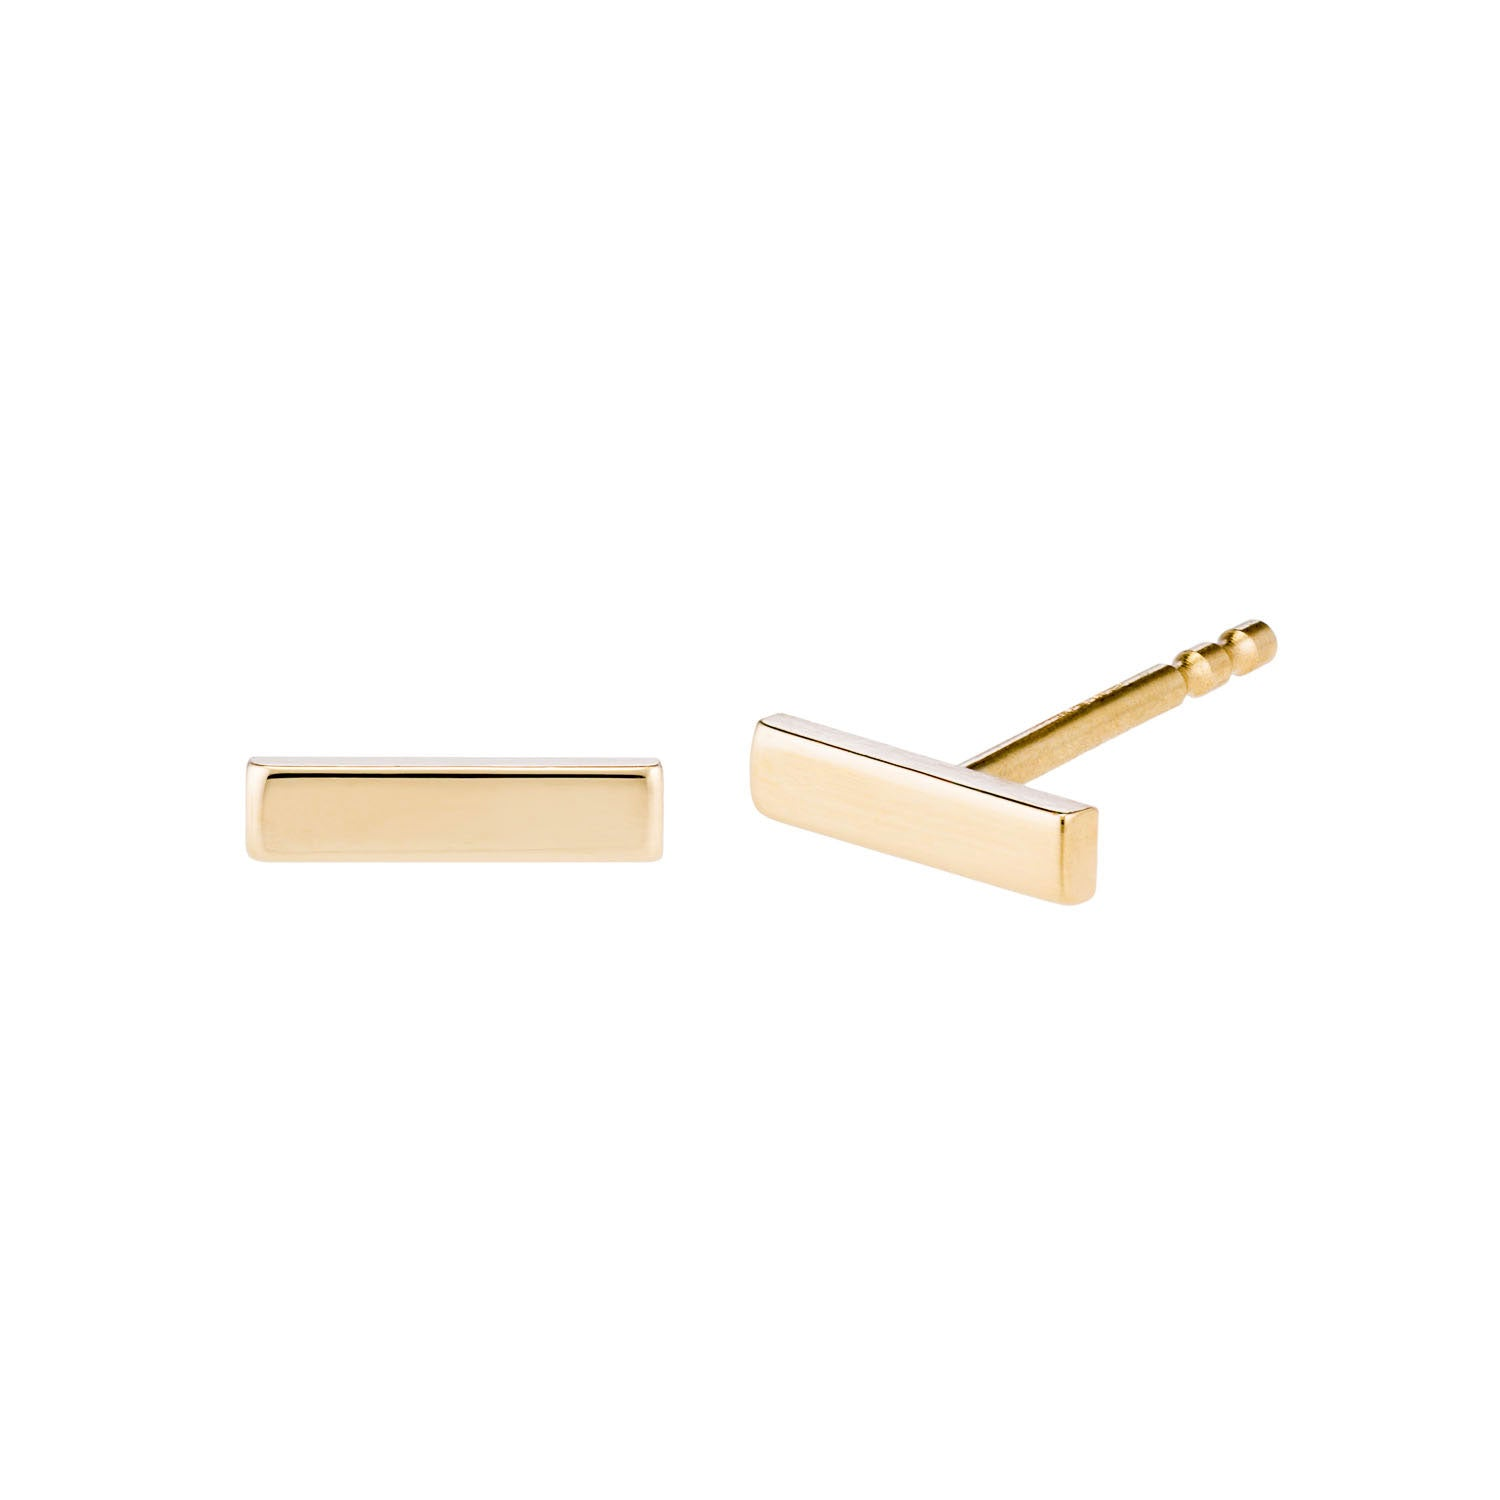 14k Yellow gold tiny bar studs by Valerie Madison